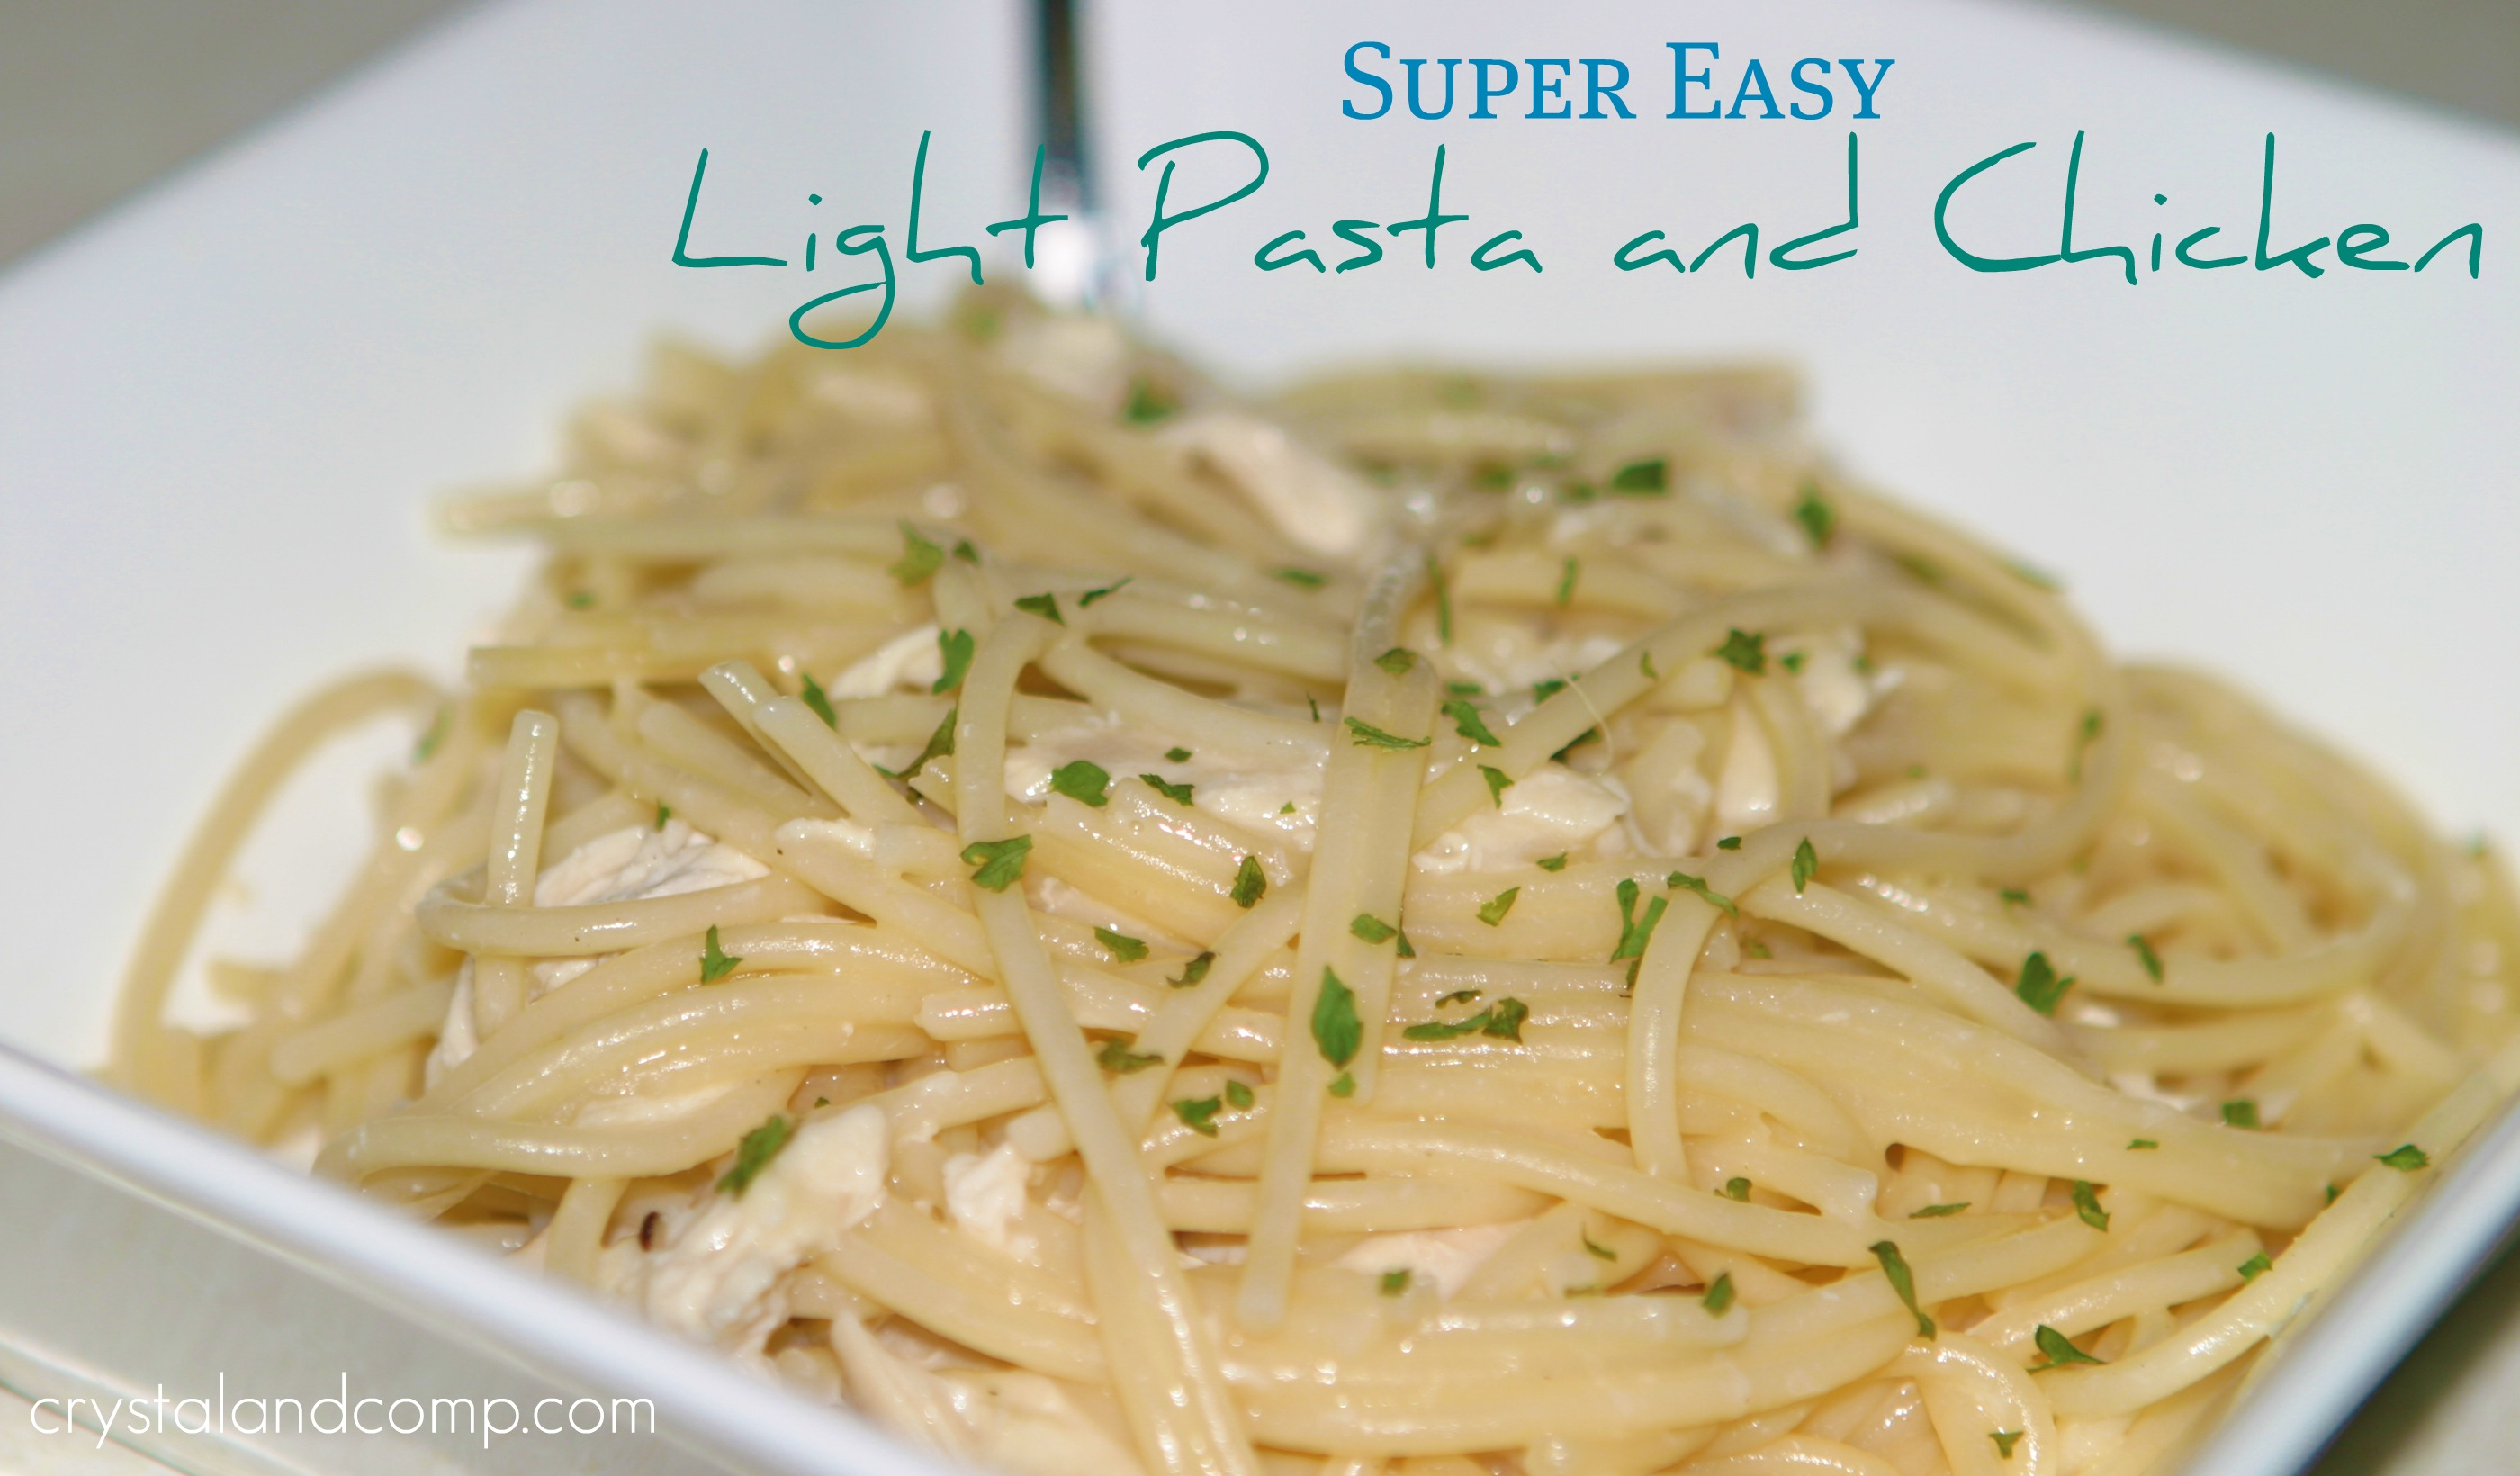 Light chicken and pasta dinner super easy crystalandcomp need forumfinder Image collections